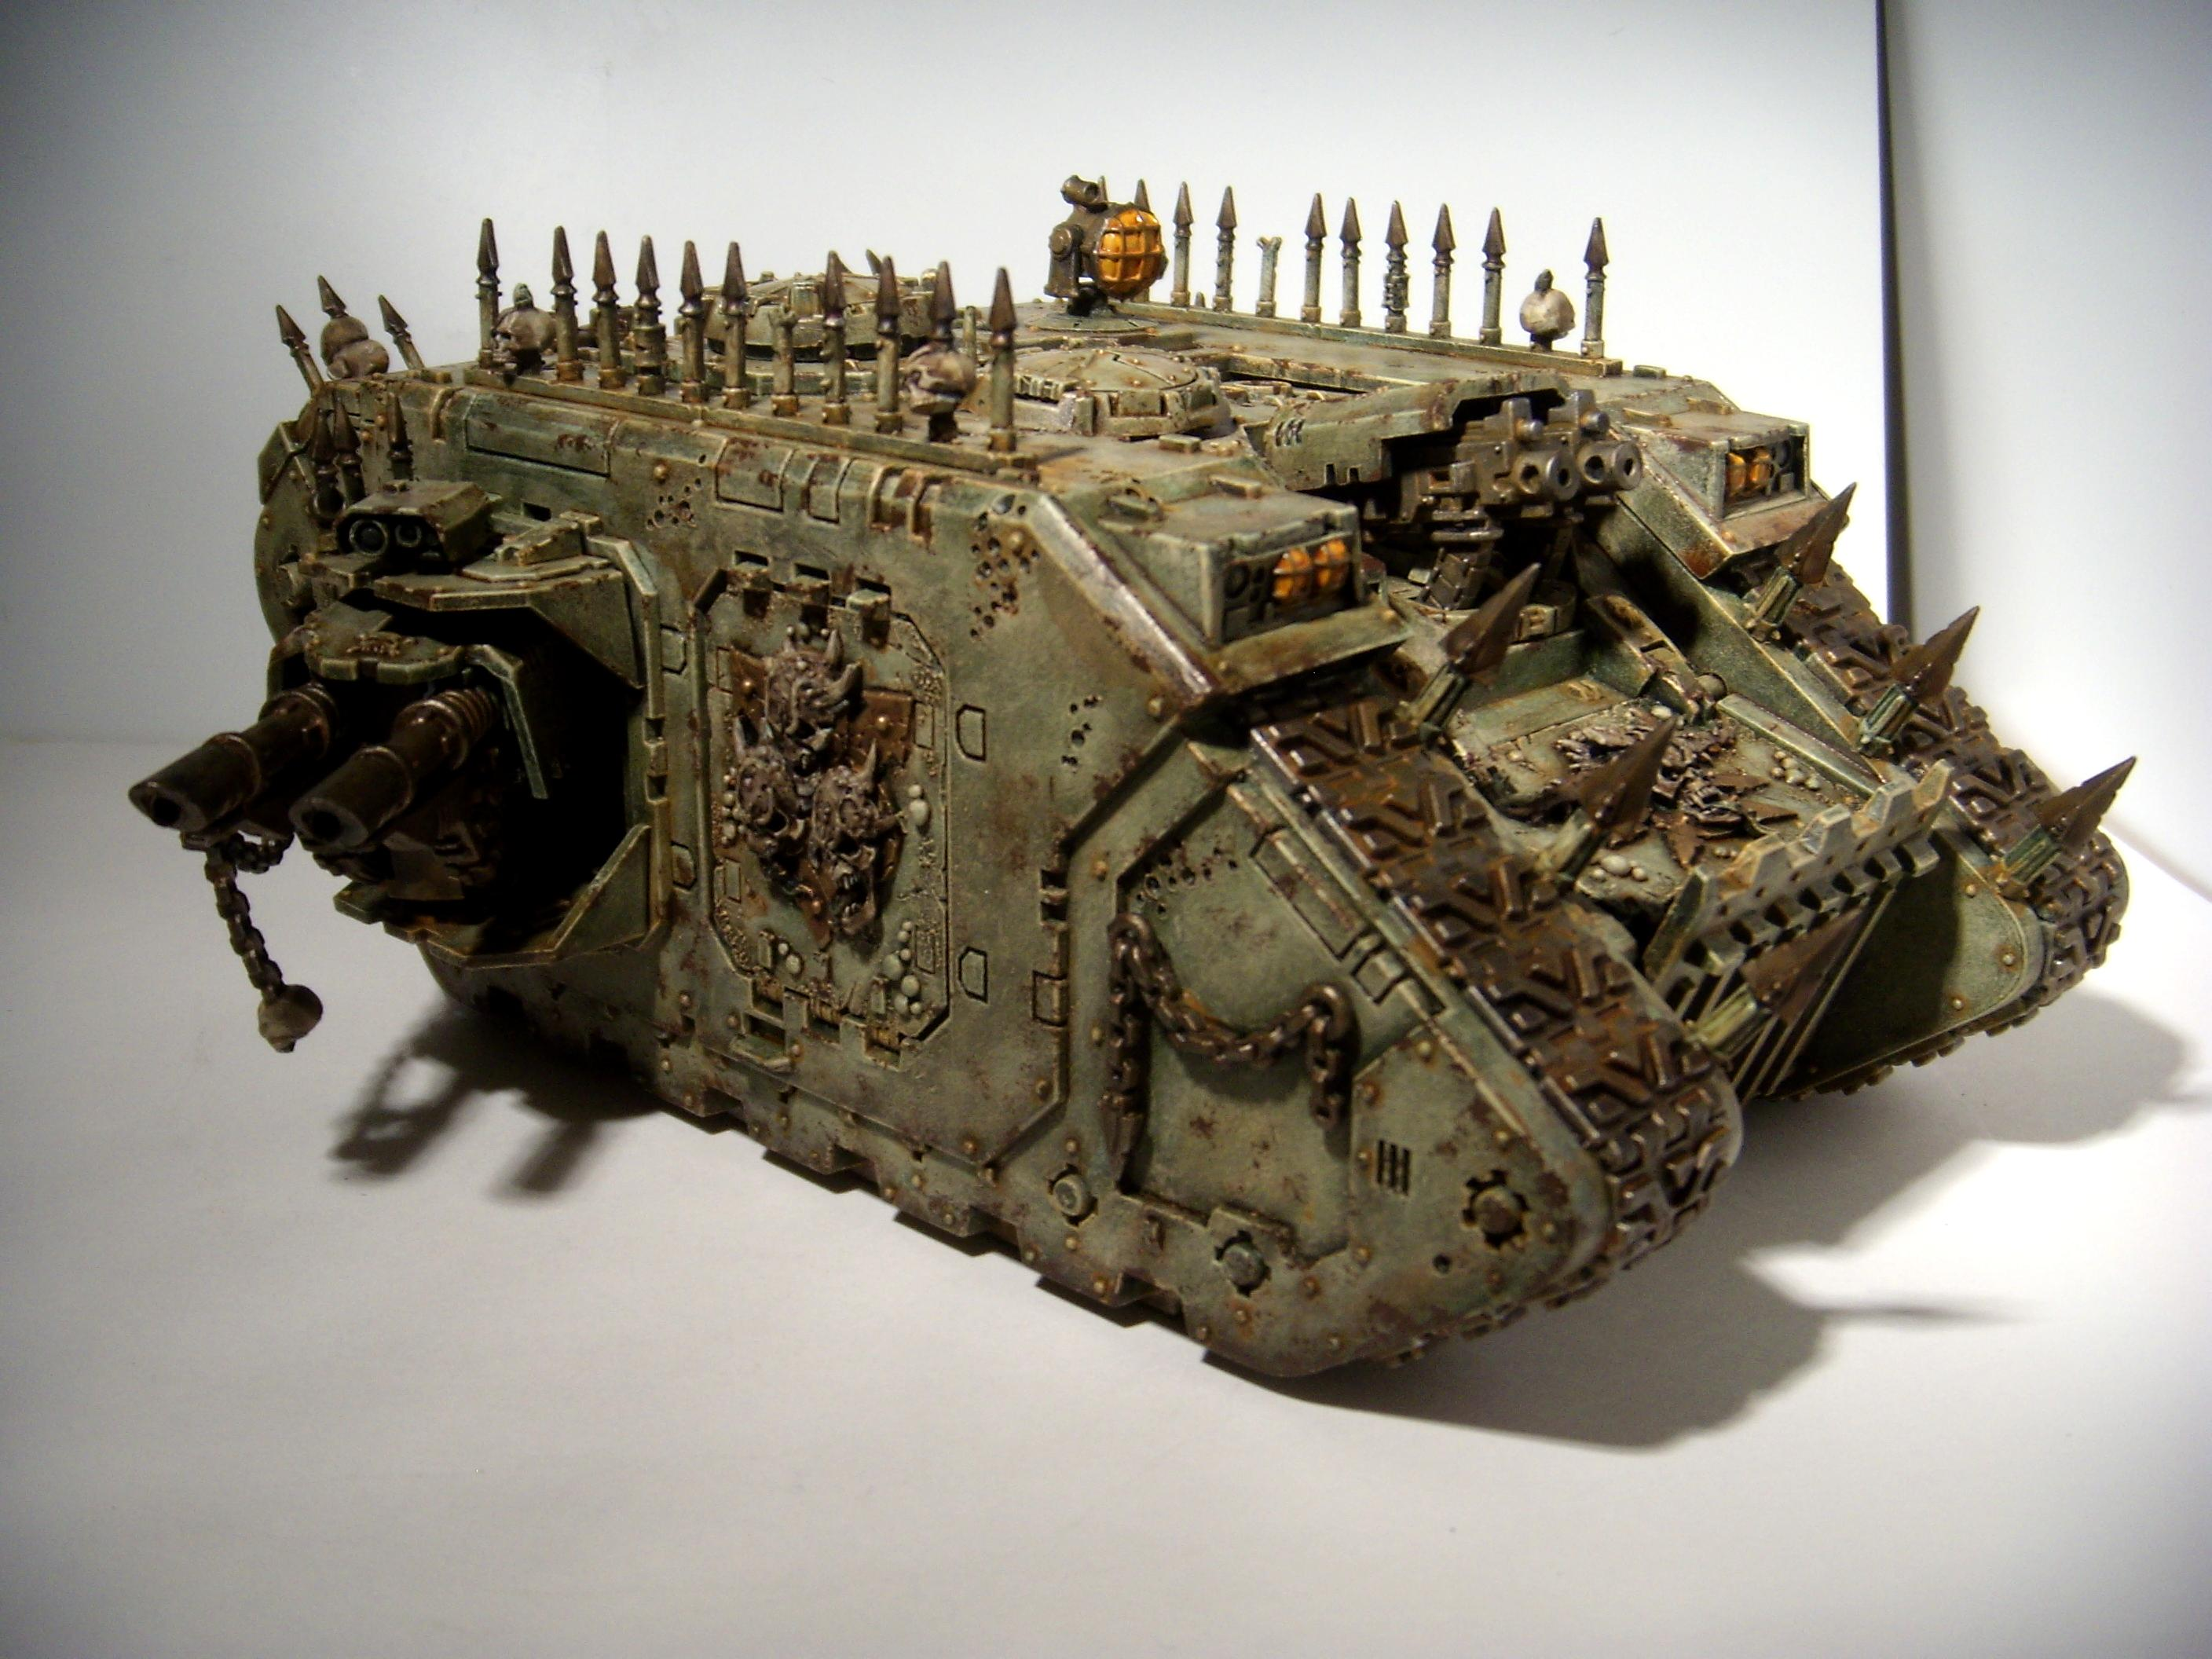 Chaos, Chaos Space Marines, Death Guard, Land Raider, Nurgle, Tank, Vehicle, Warhammer 40,000